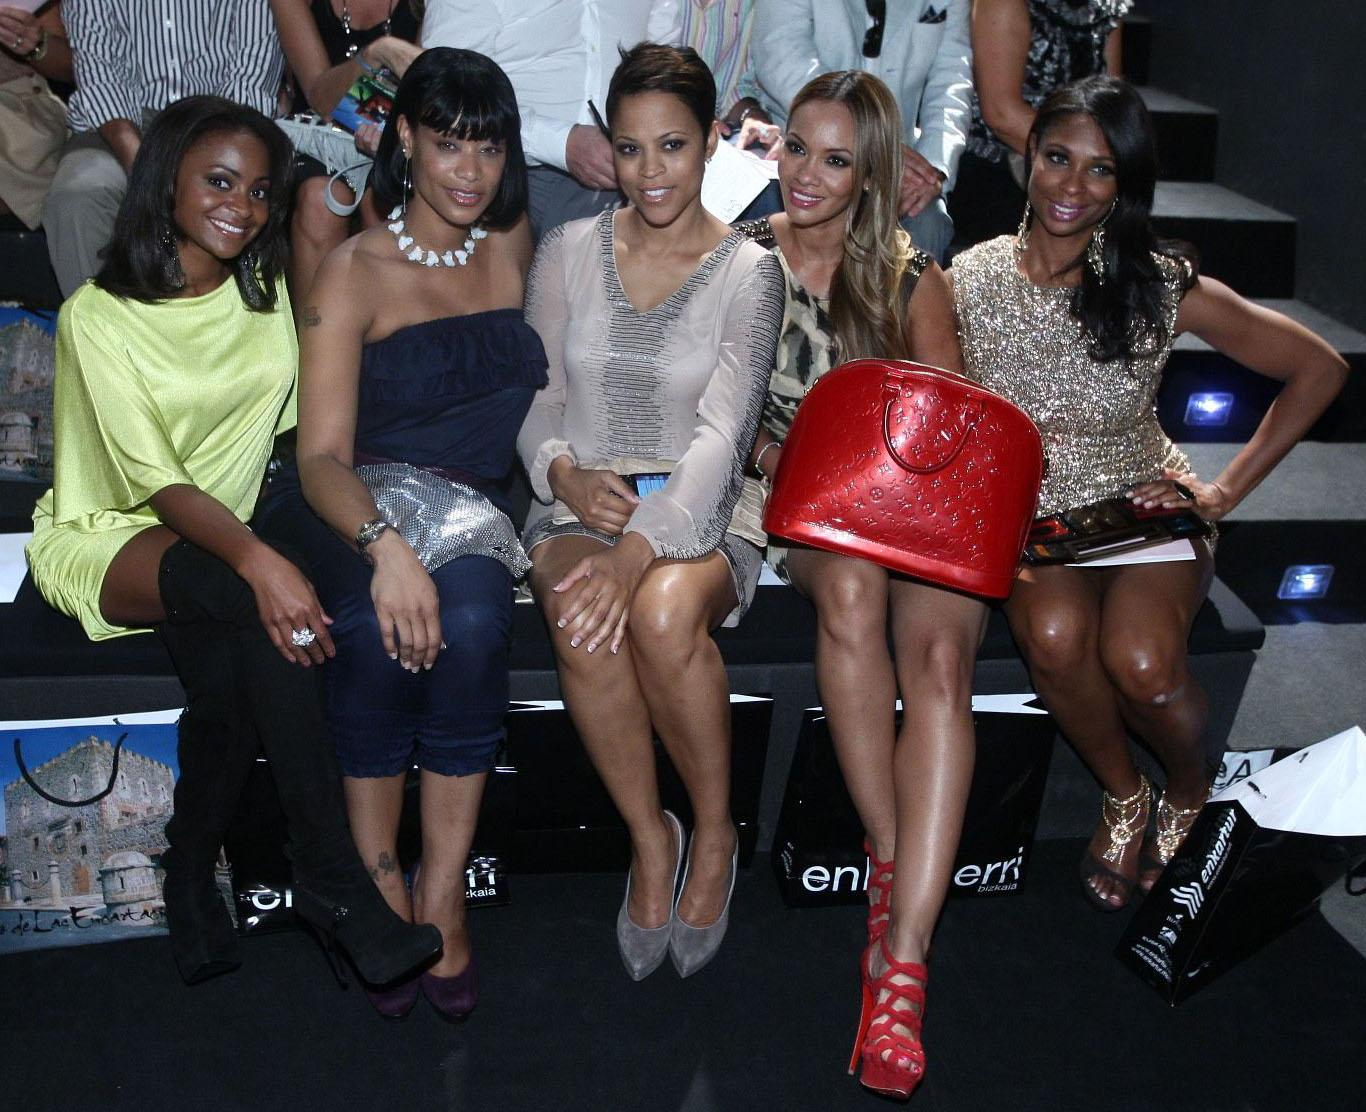 Celebrities attend Cibeles Madrid Fashion Week S/S 2011 - Day 2